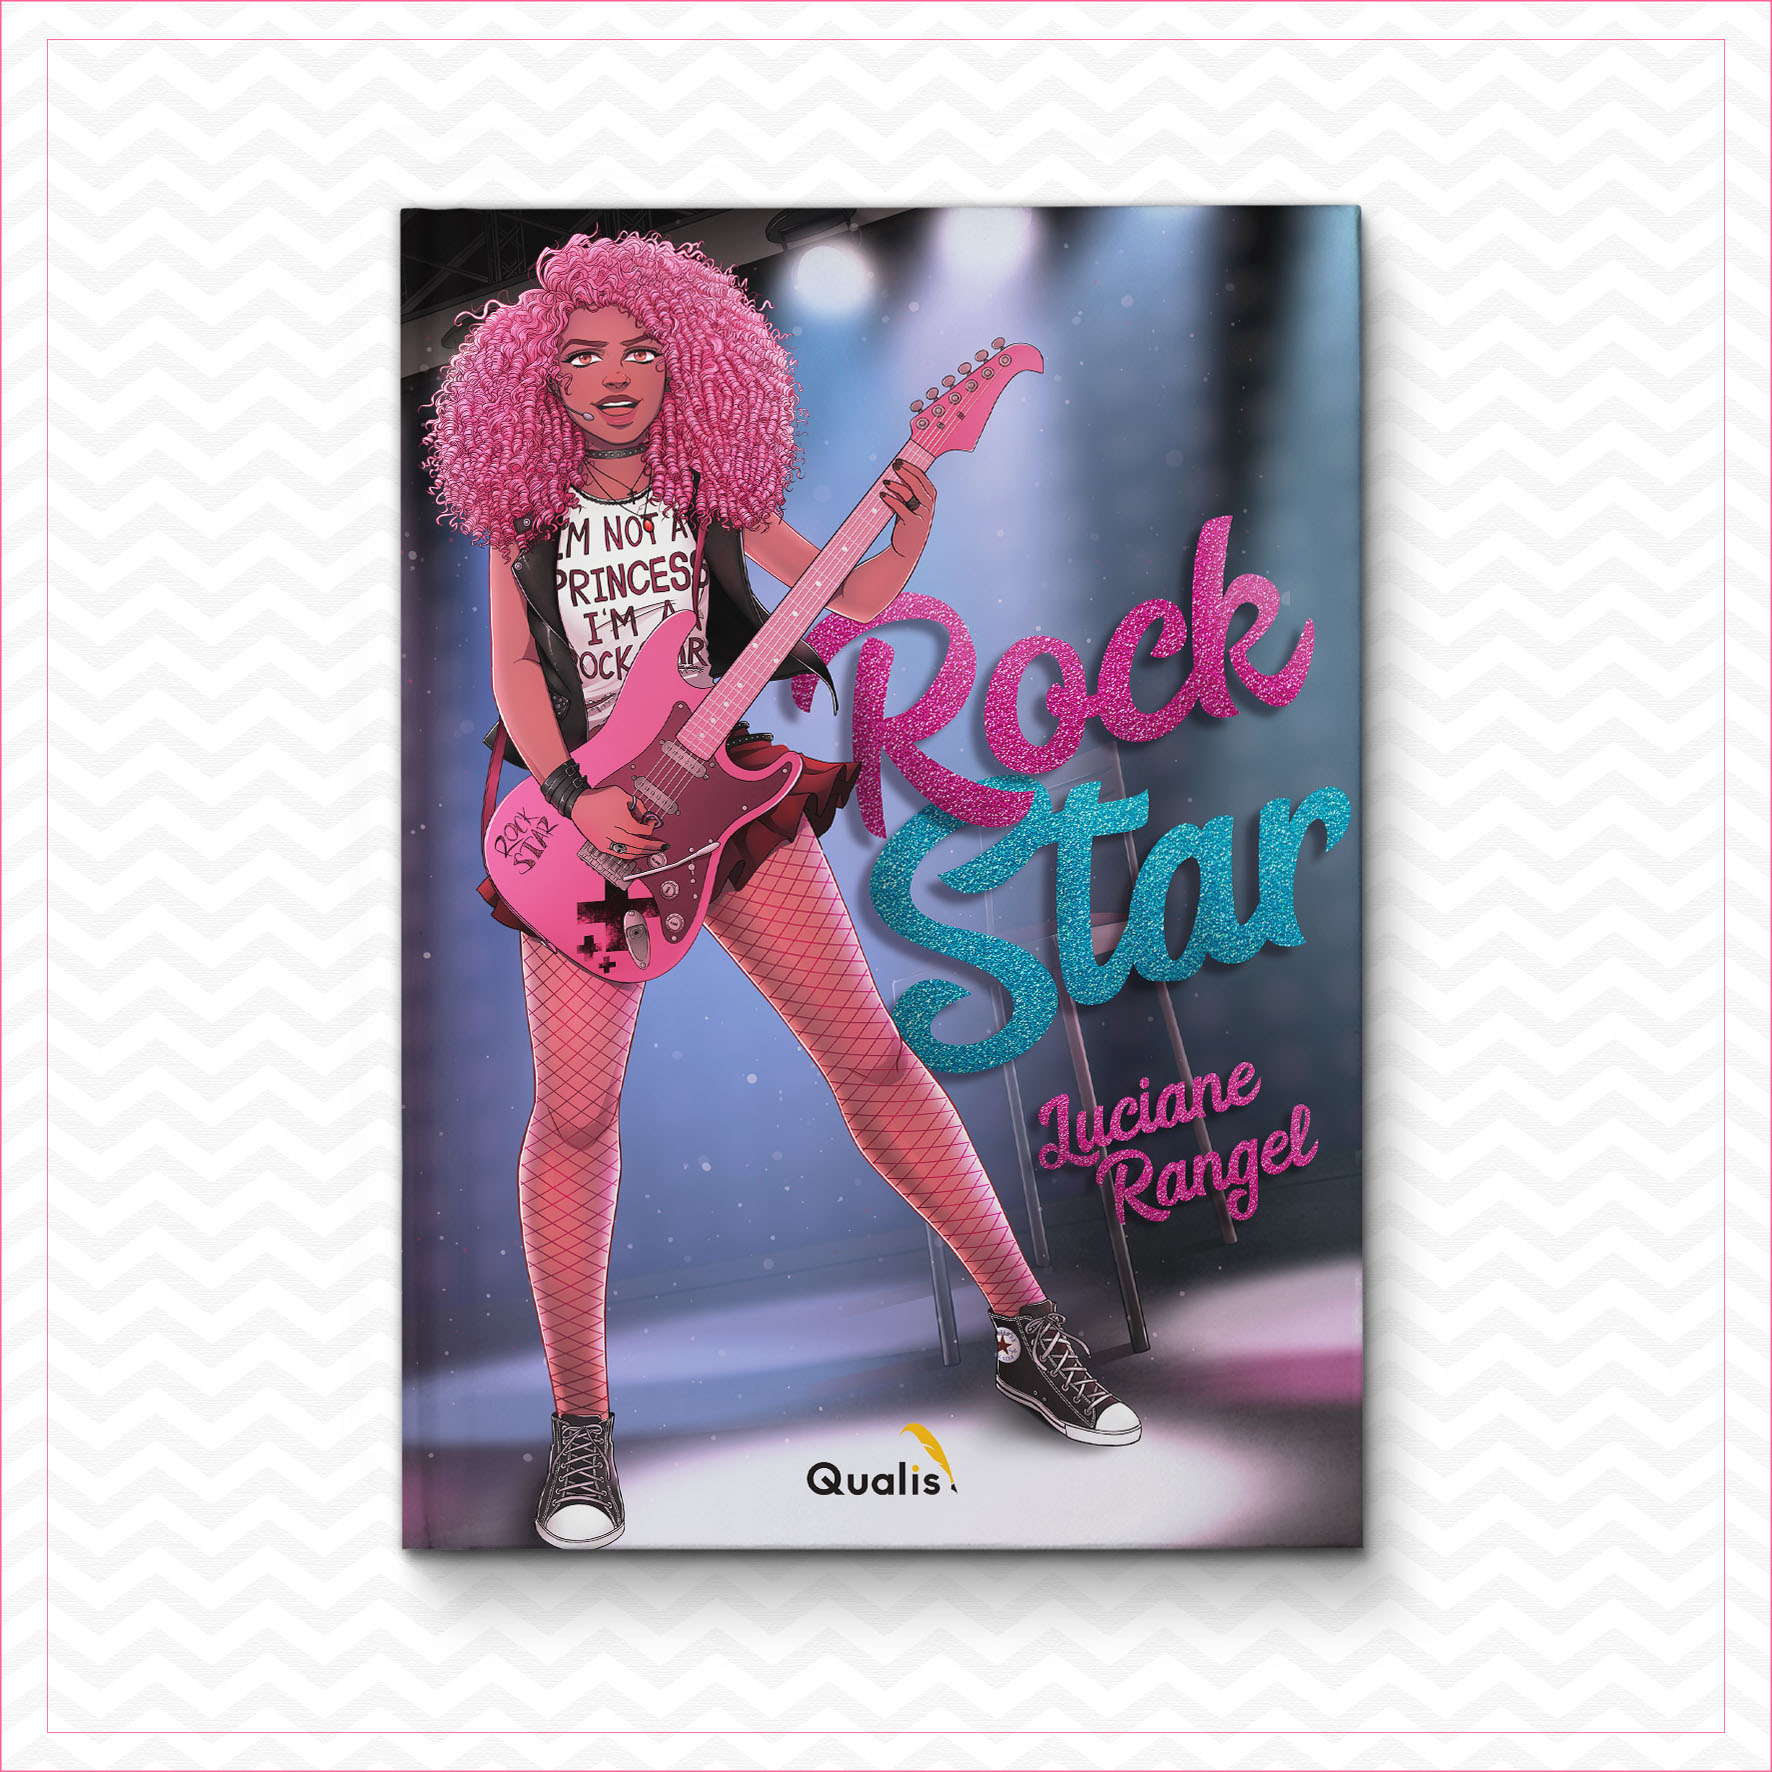 Rock Star – Luciane Rangel